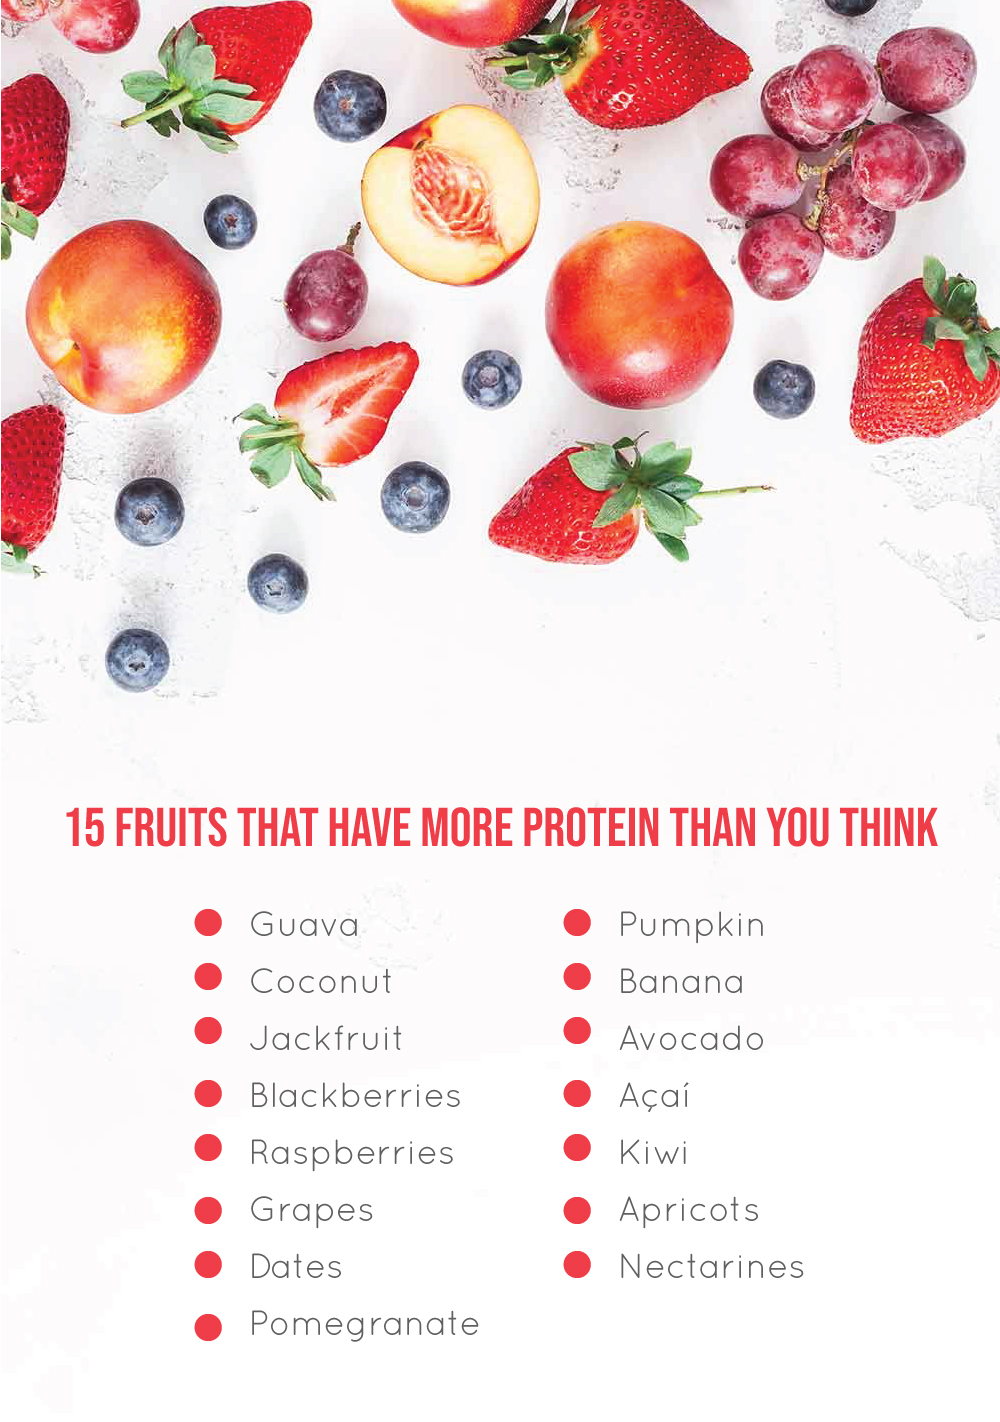 15 Fruits That Have More Protein Than You Think